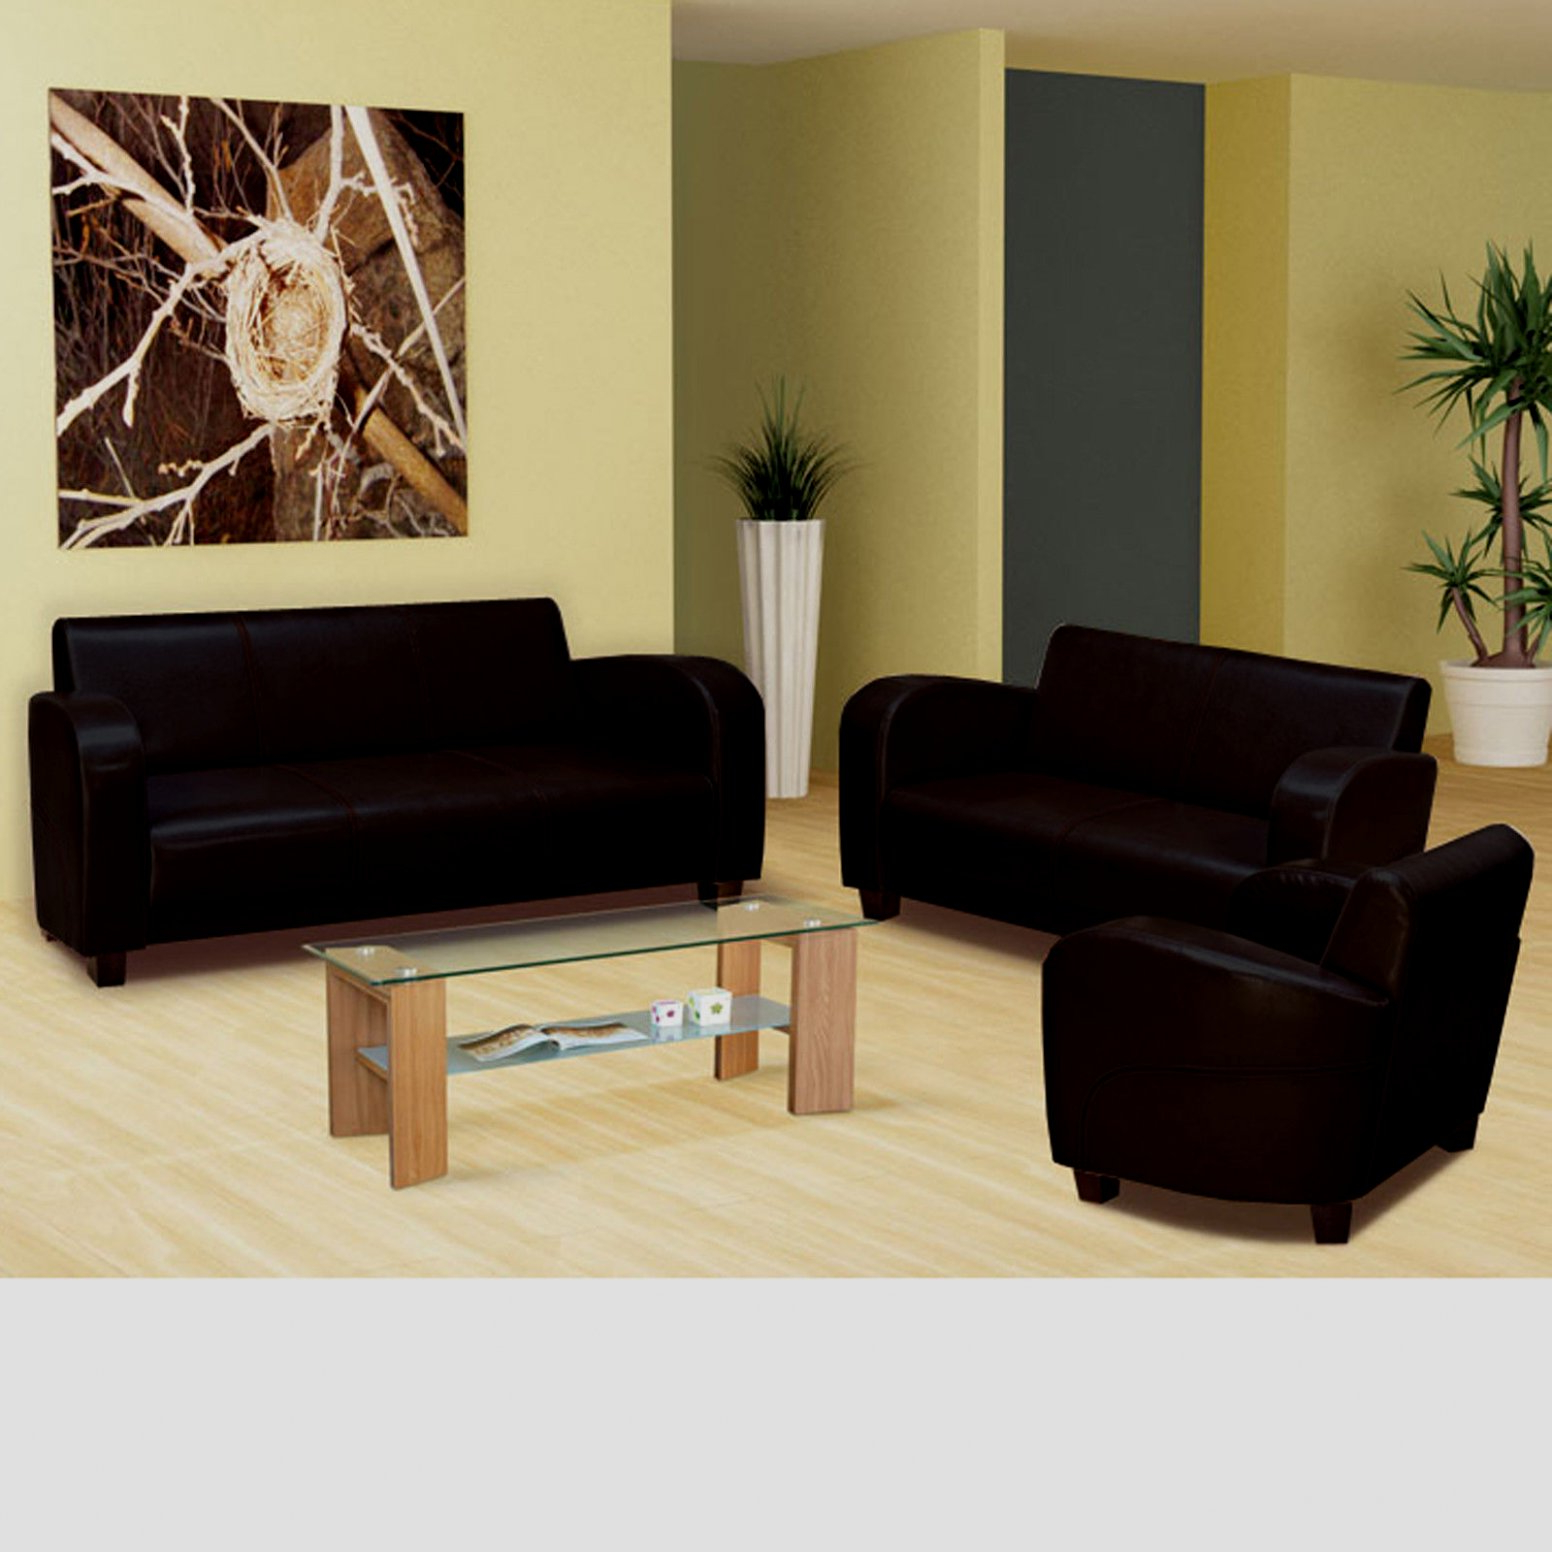 Sofas Conforama Madrid 3id6 sofas Conforama Madrid Hermoso sofa 3 2 1 Sitzer Latest sofa Quality